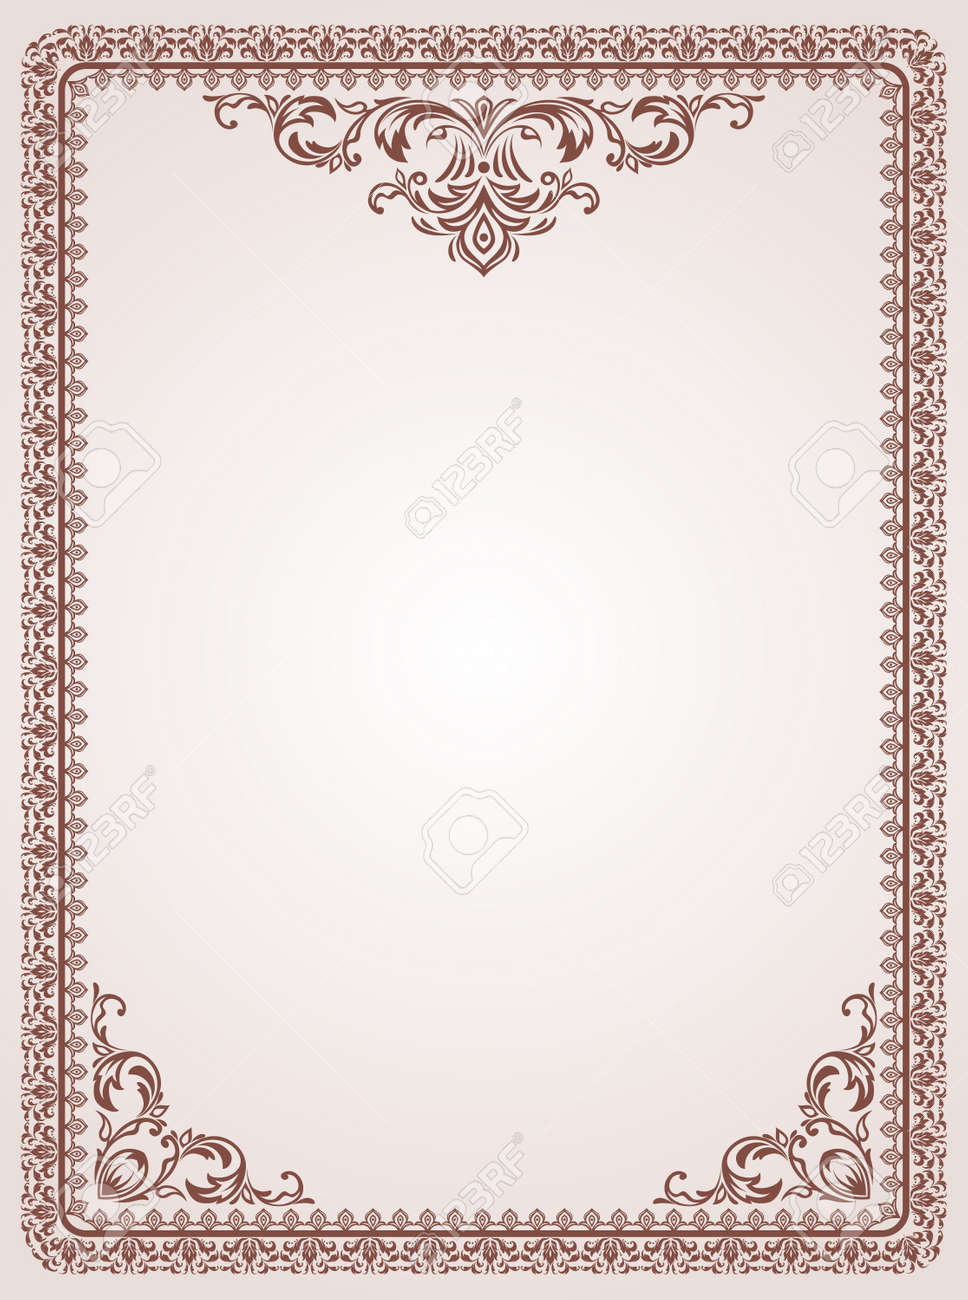 Certificate template vintage background royalty free cliparts certificate template vintage background stock vector 15990396 yelopaper Gallery